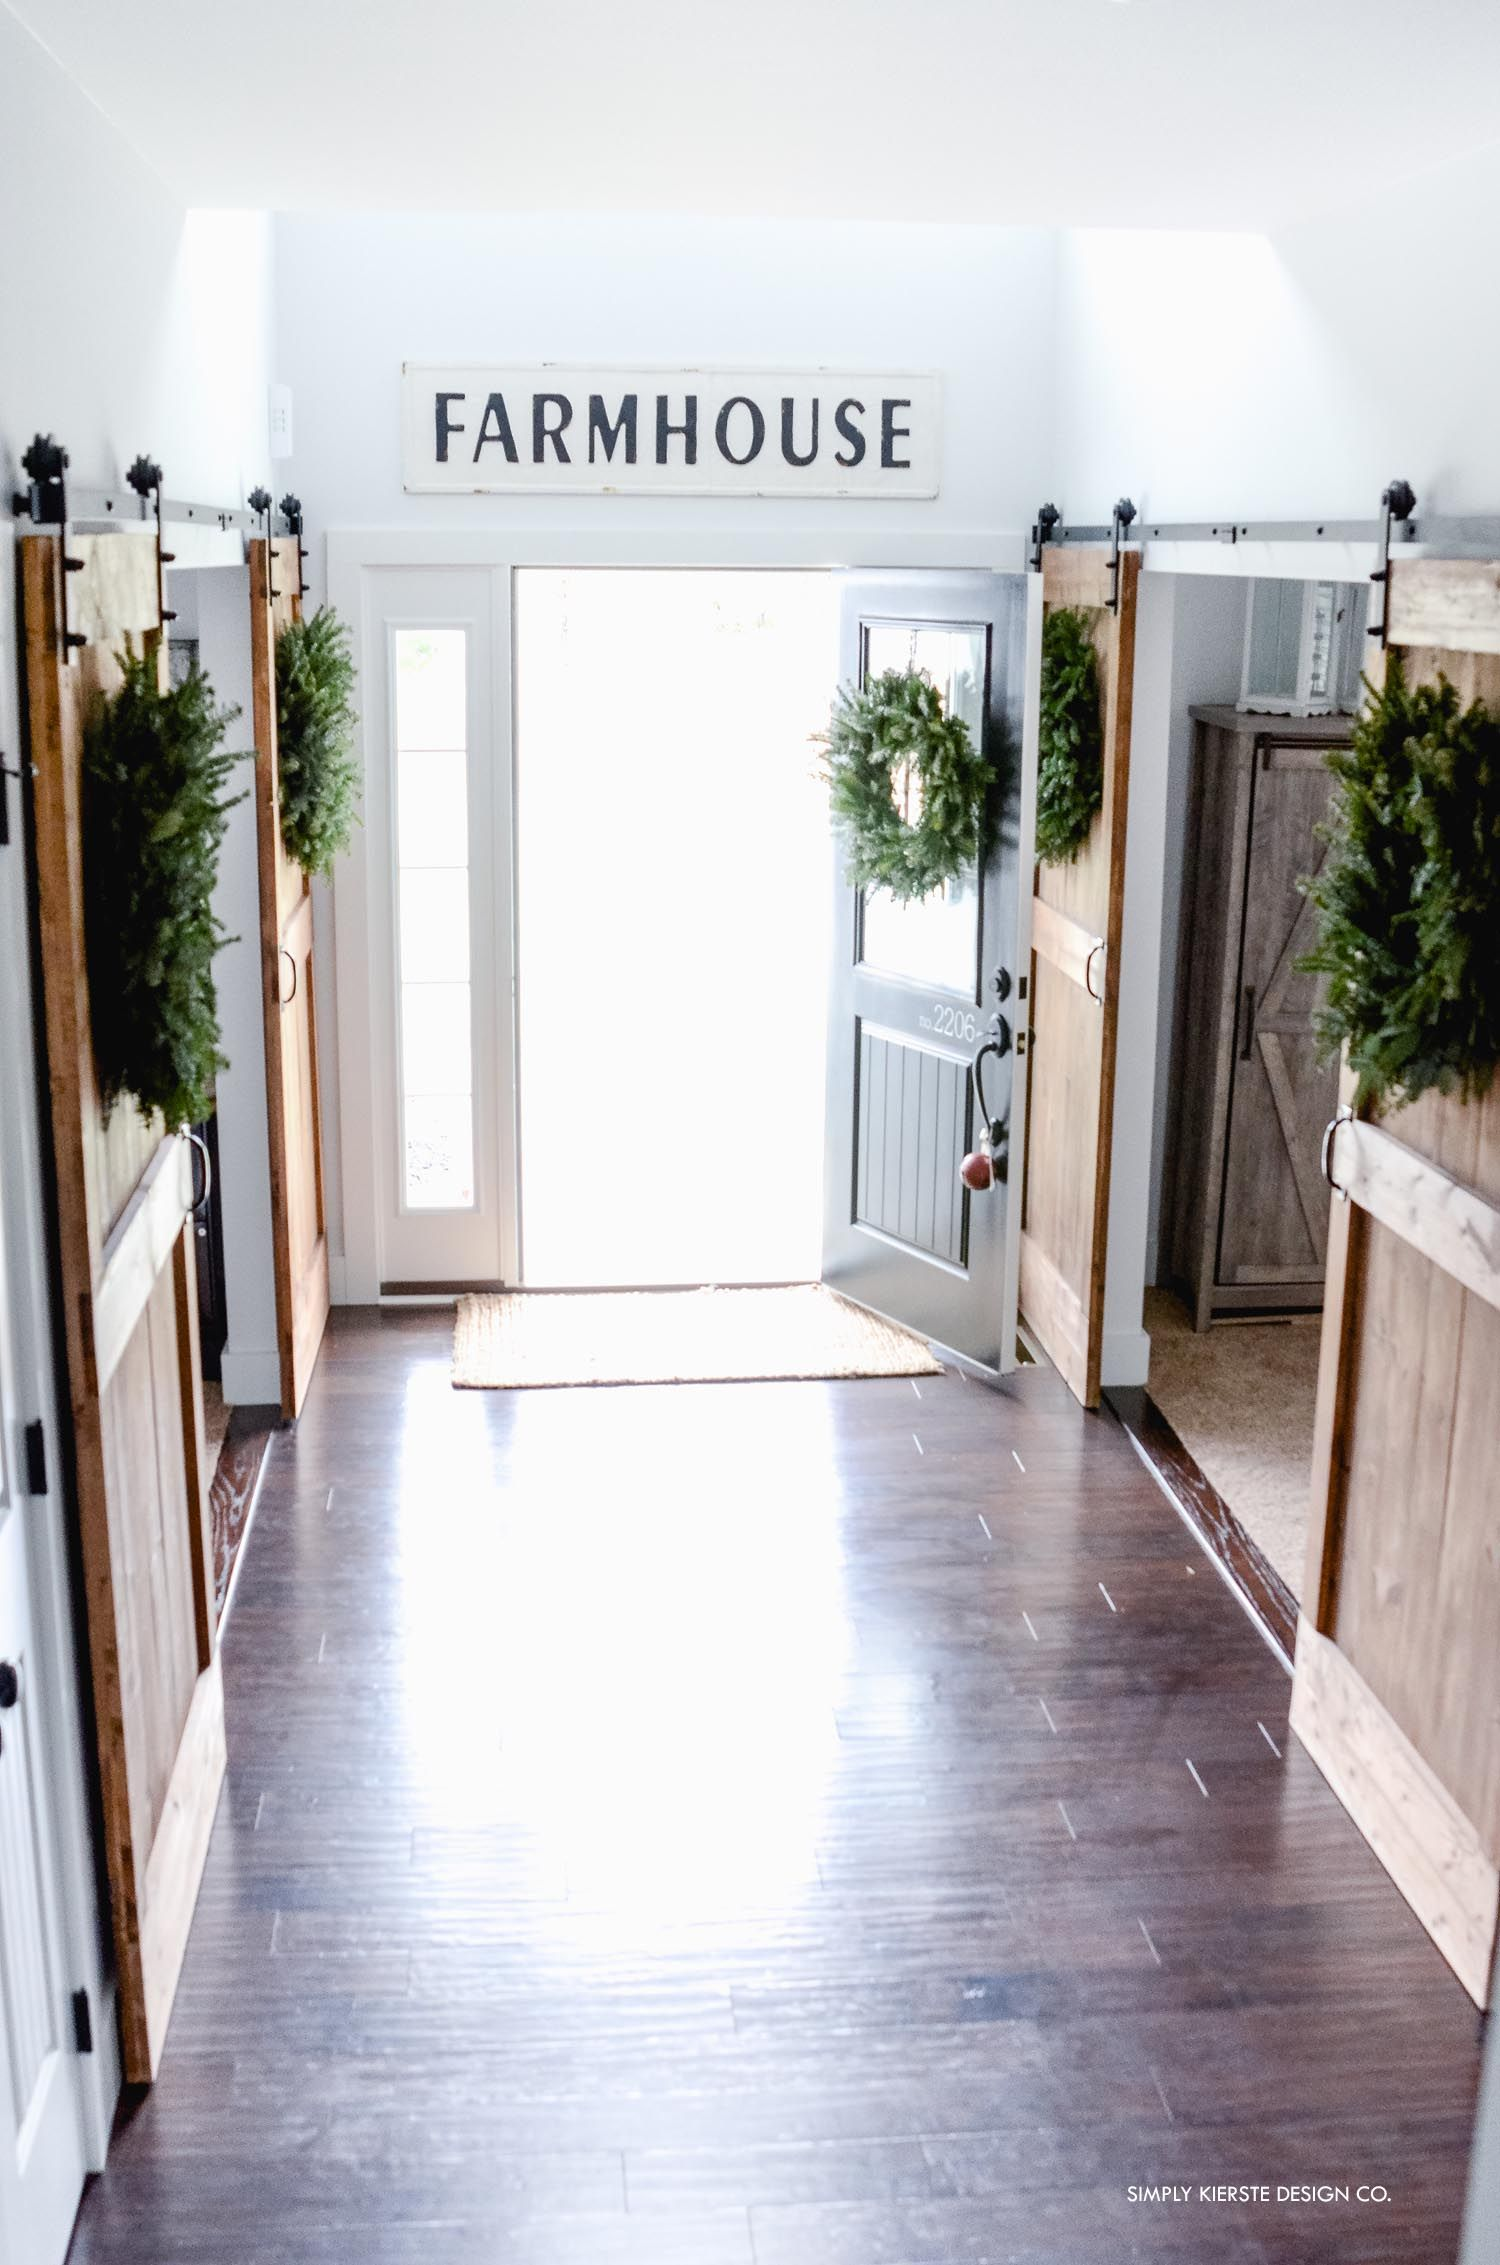 Old Salt Farm Christmas Home Tour 2017 | Farming, Farmhouse style ...